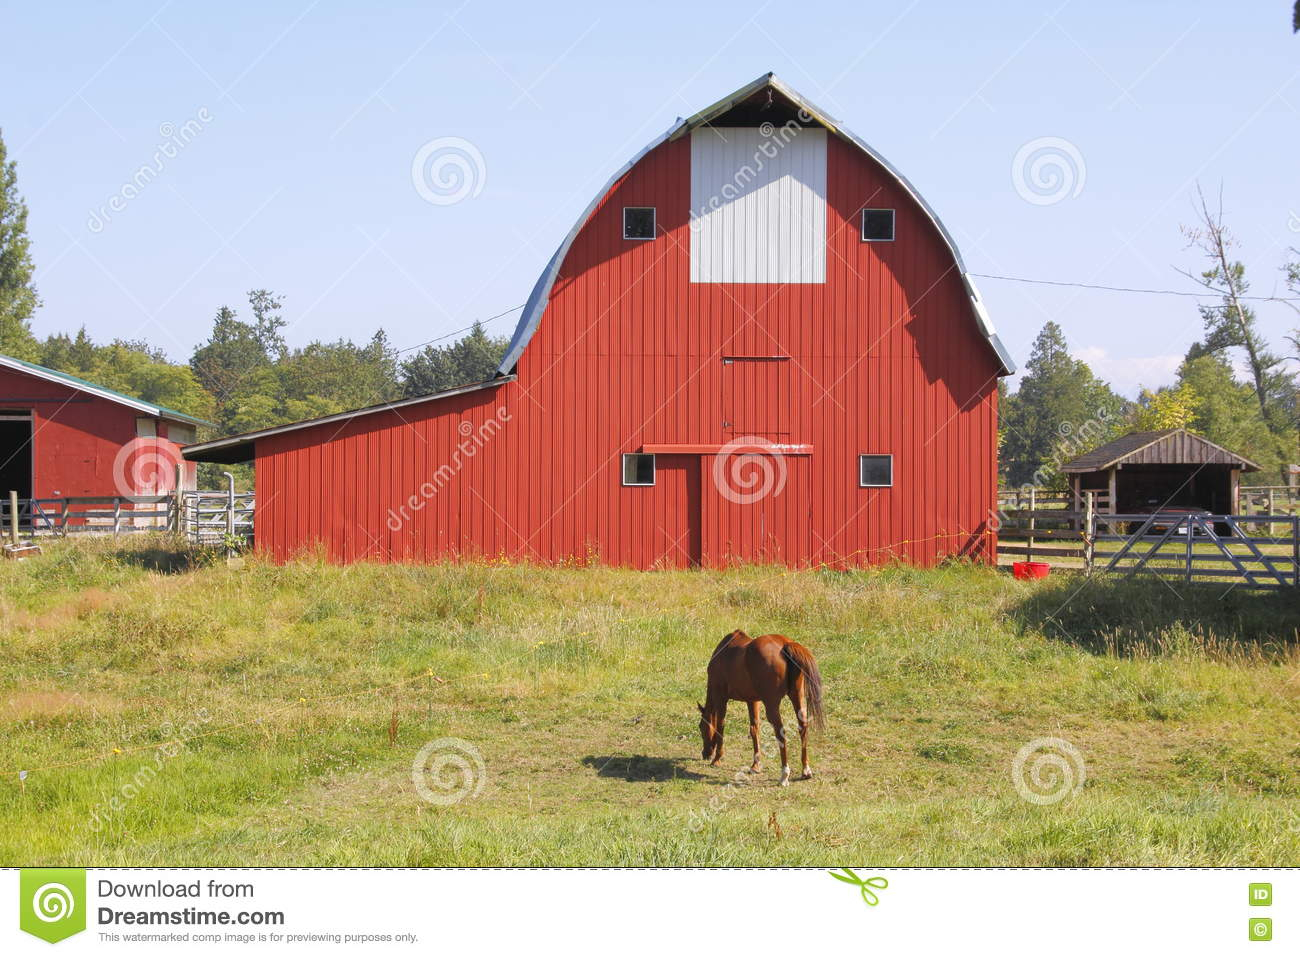 Red Barn and Horse Grazing